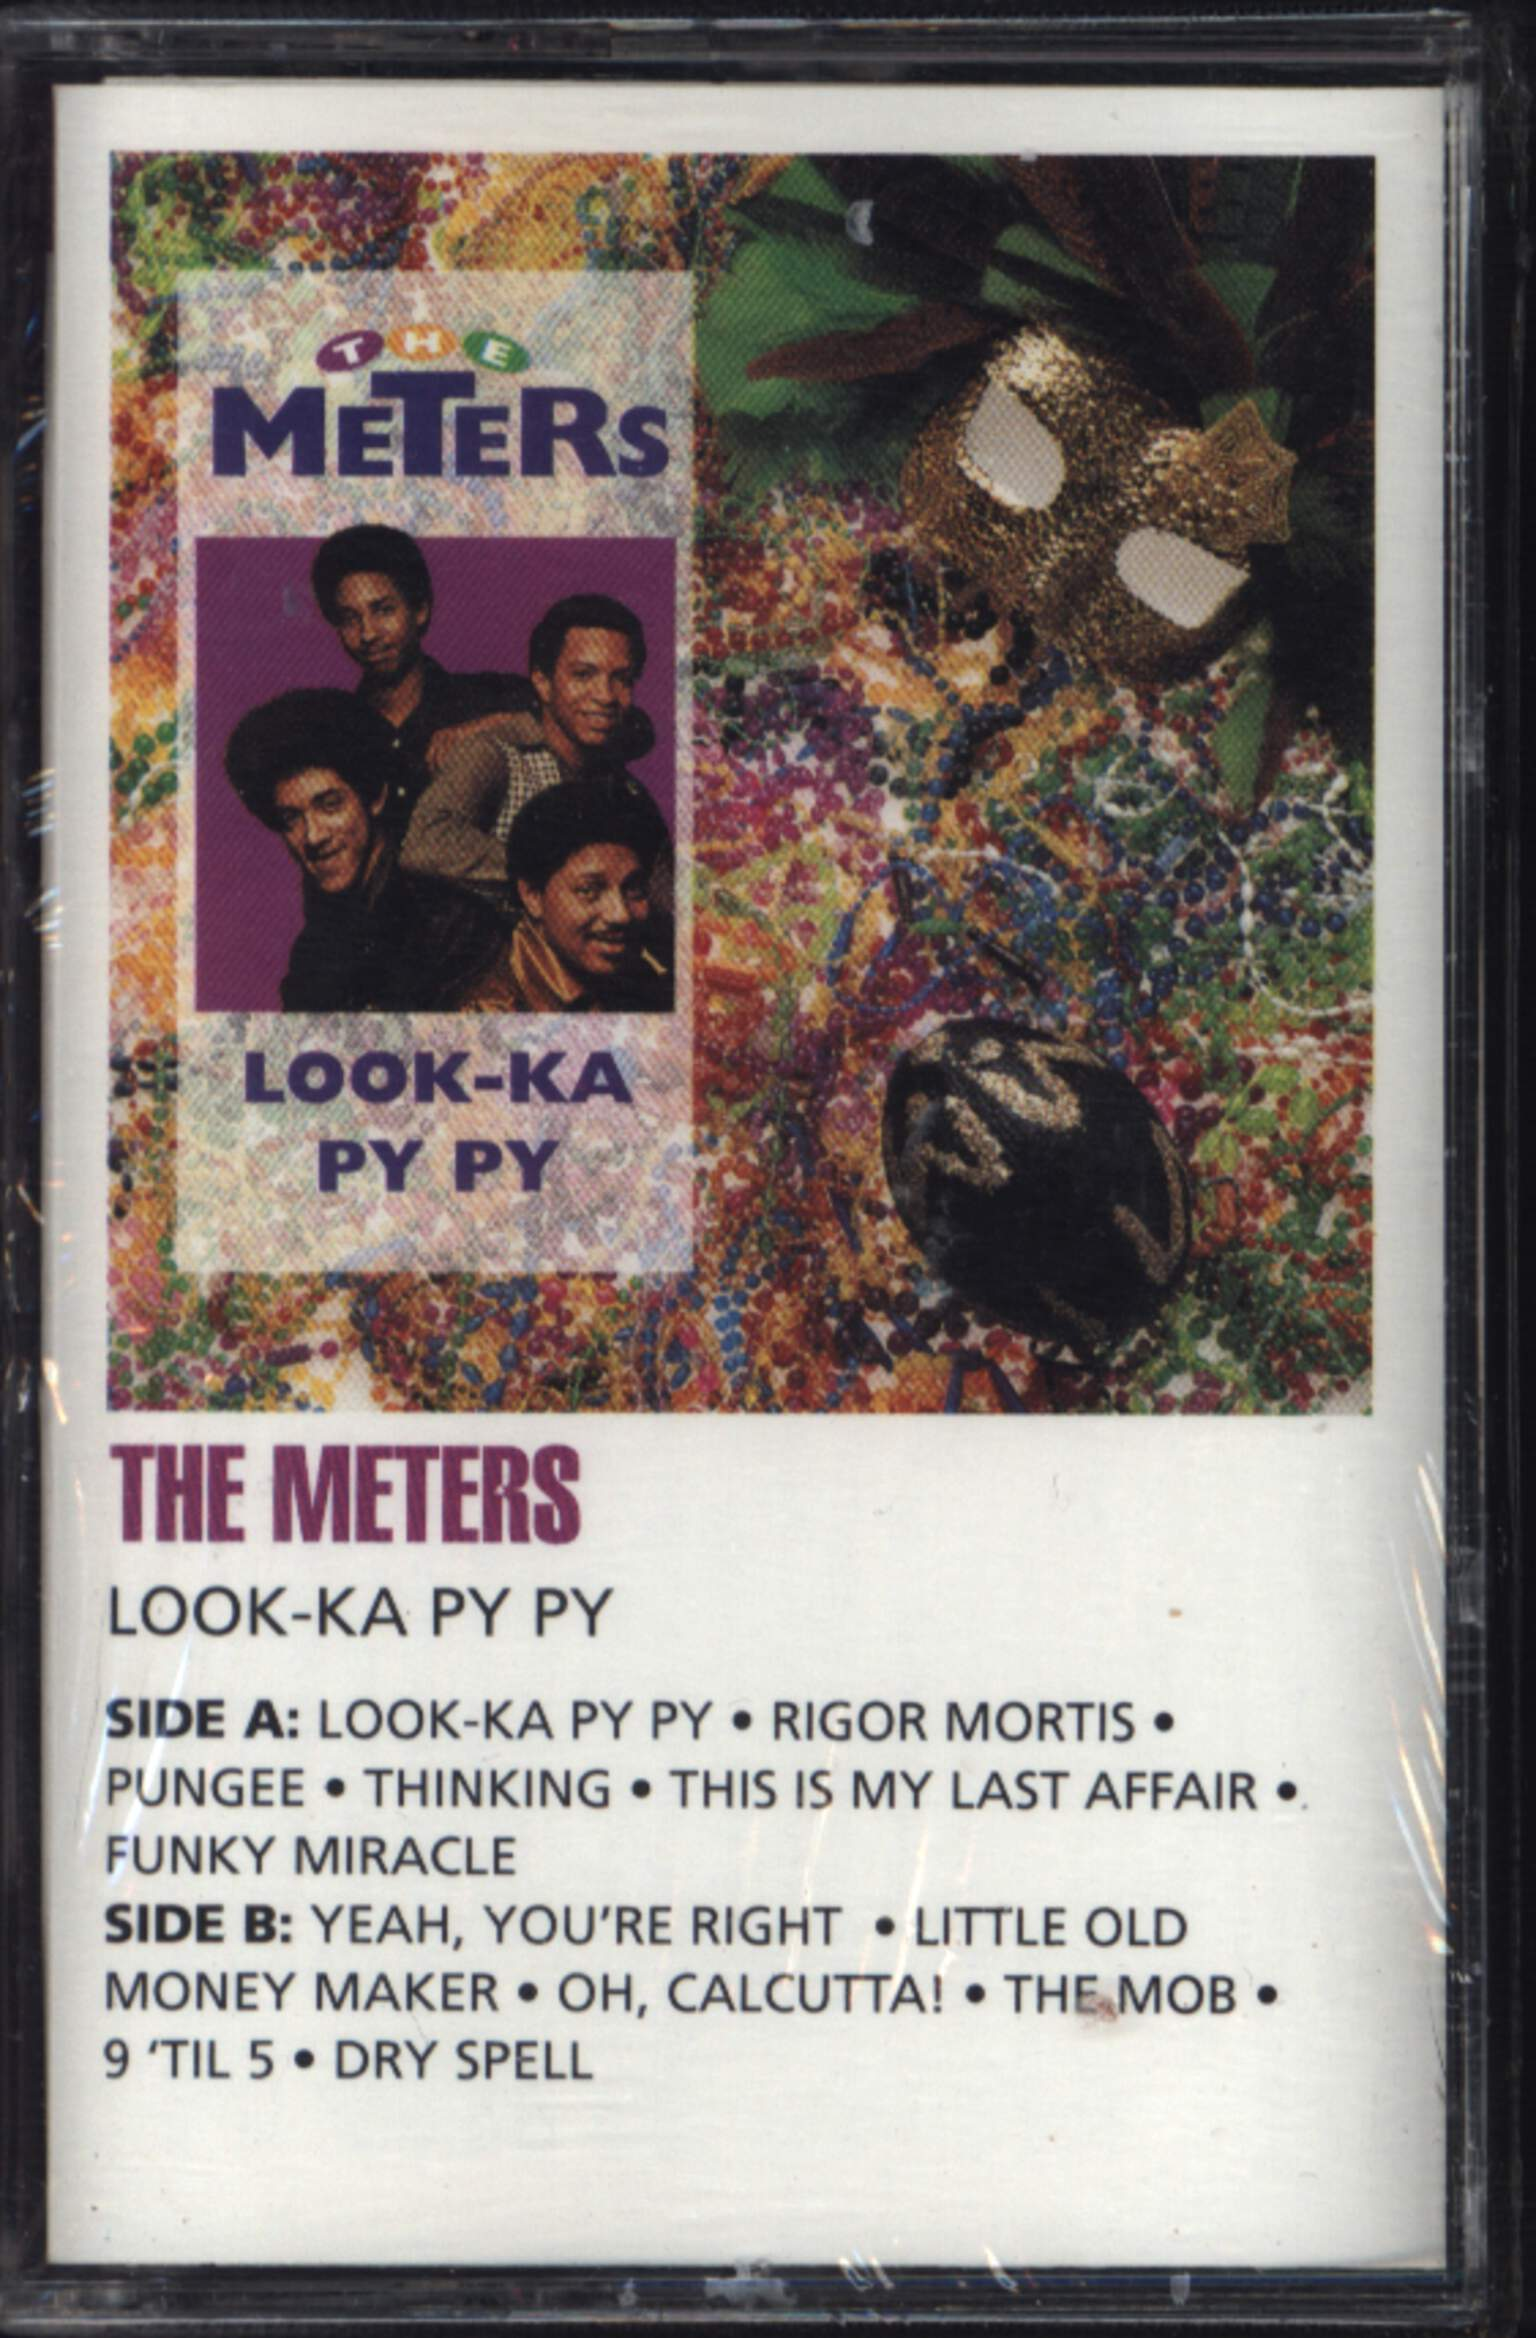 The Meters: Look-Ka Py Py, Compact Cassette